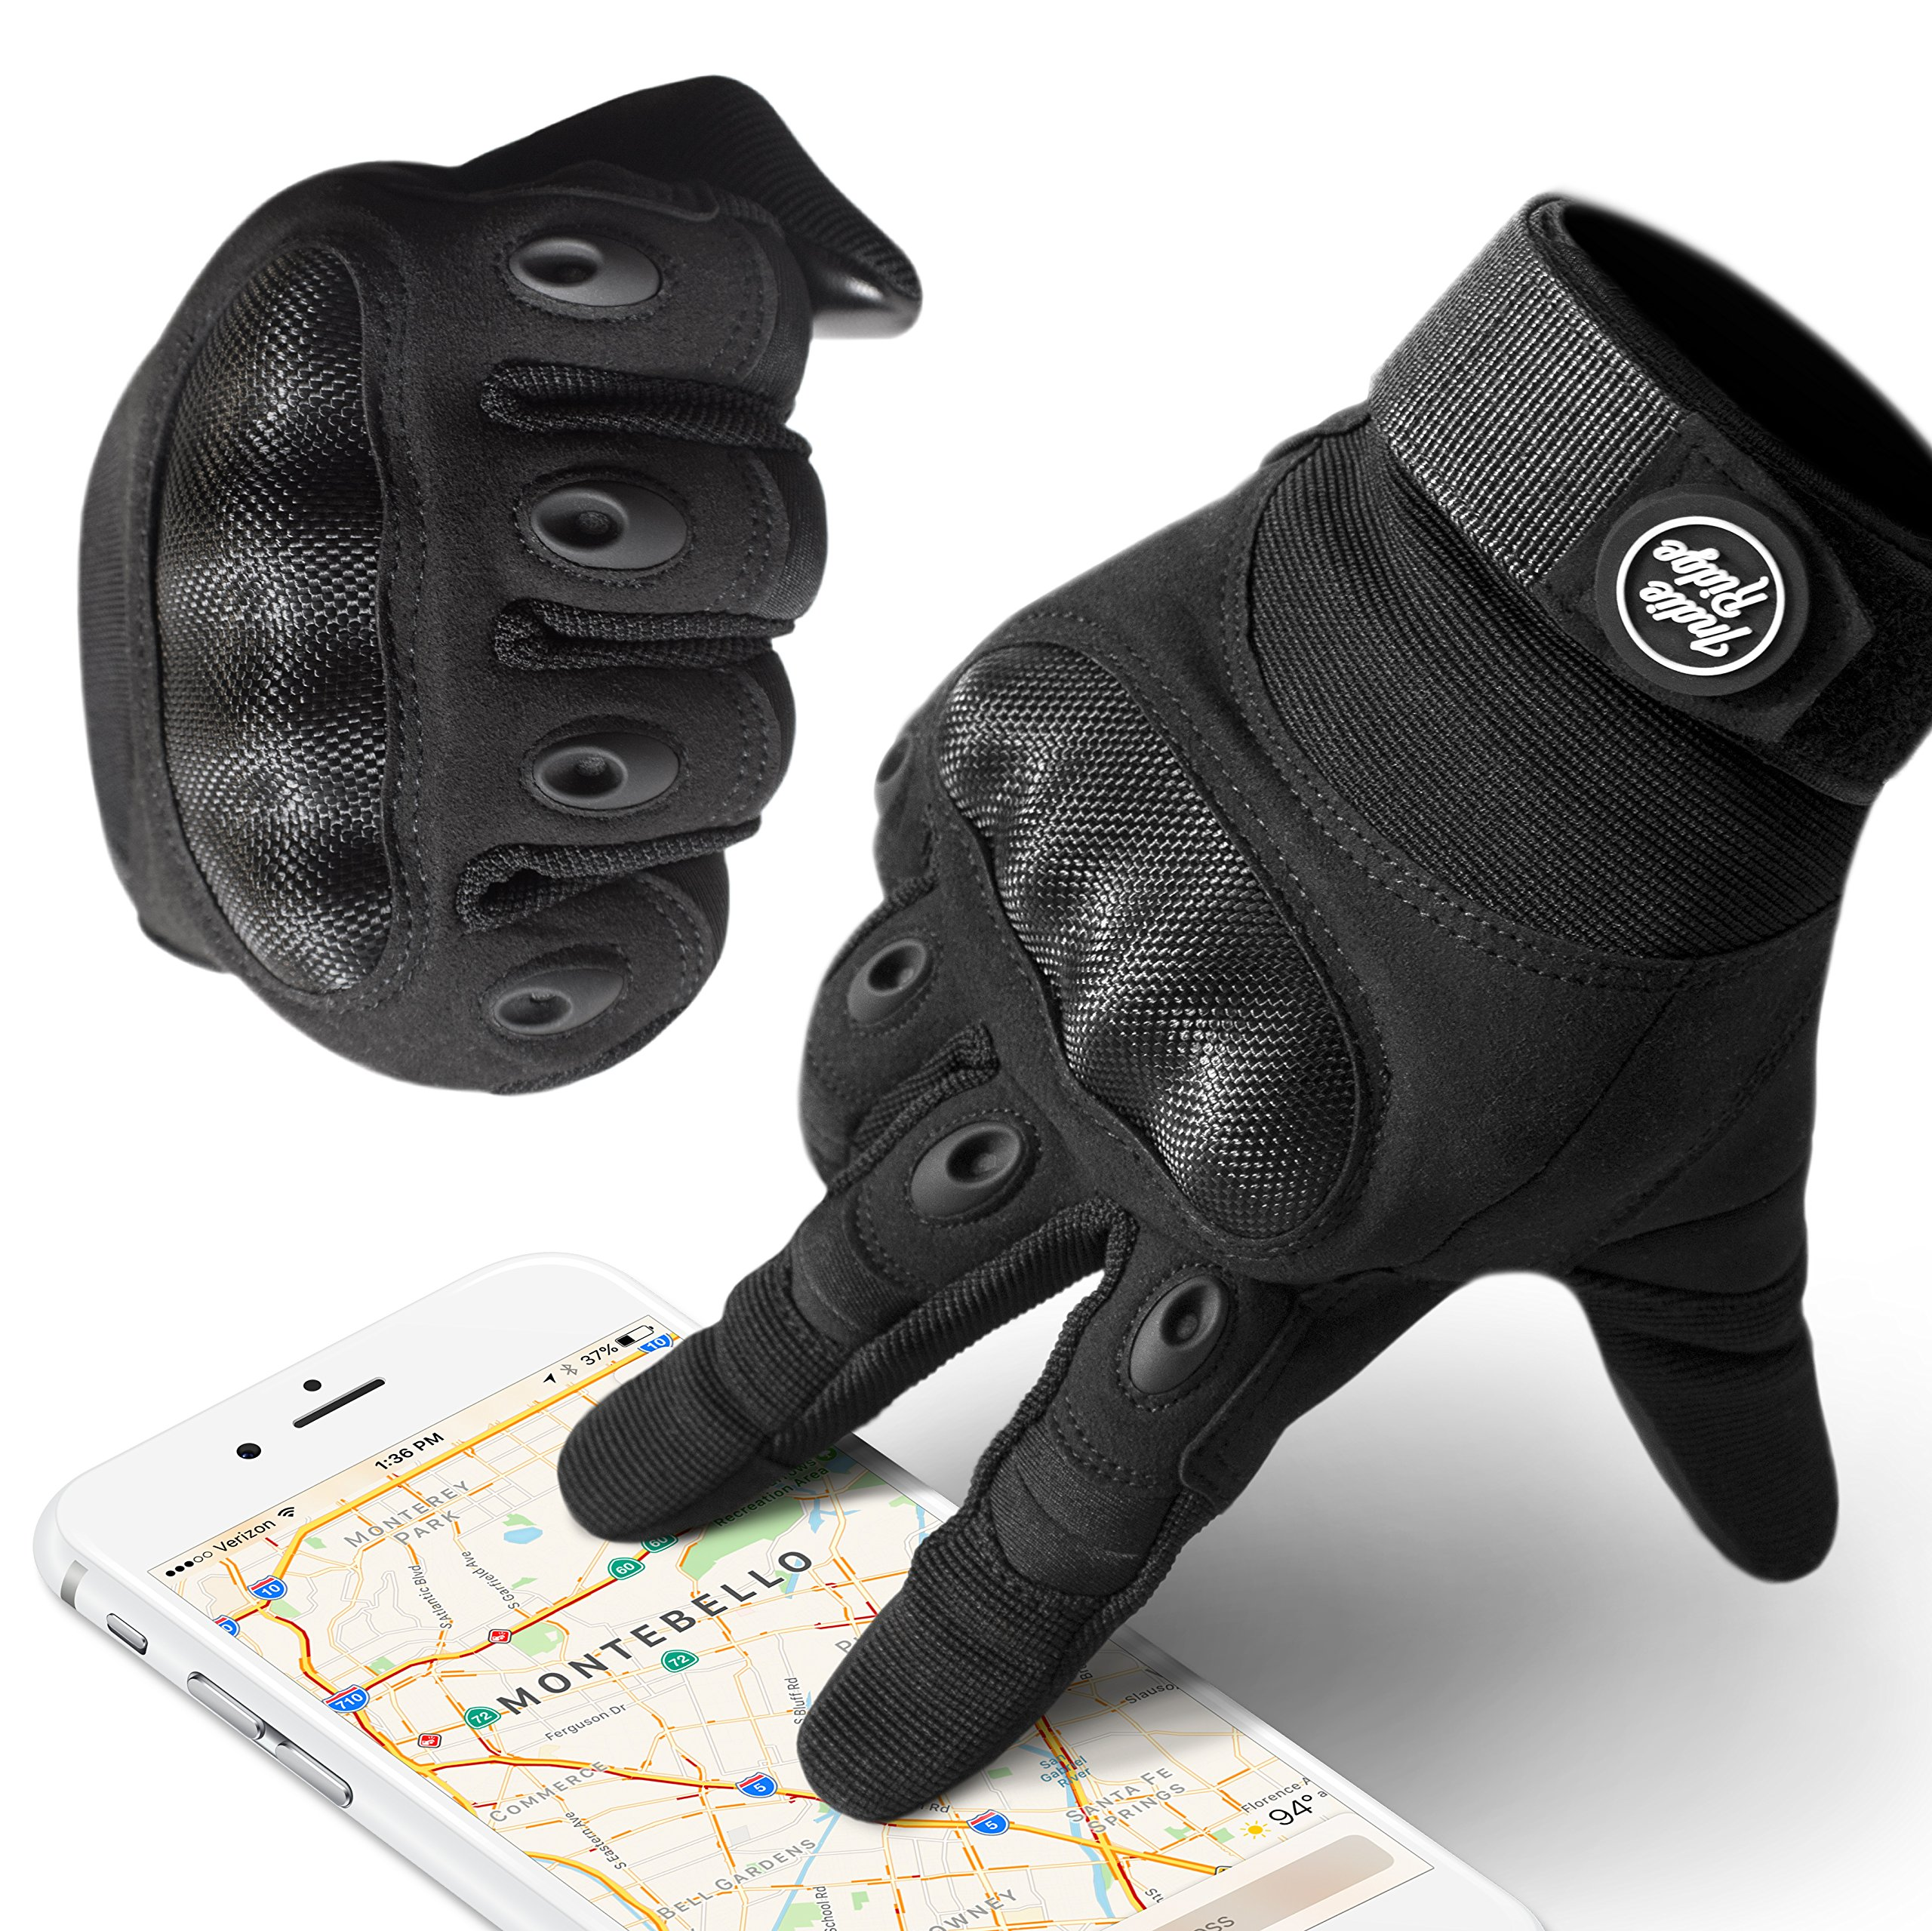 Indie Ridge Powersports Gloves, Pro-Biker Carbon Fiber Powersports Racing Gloves with Touch Screen Fingertips (Large)